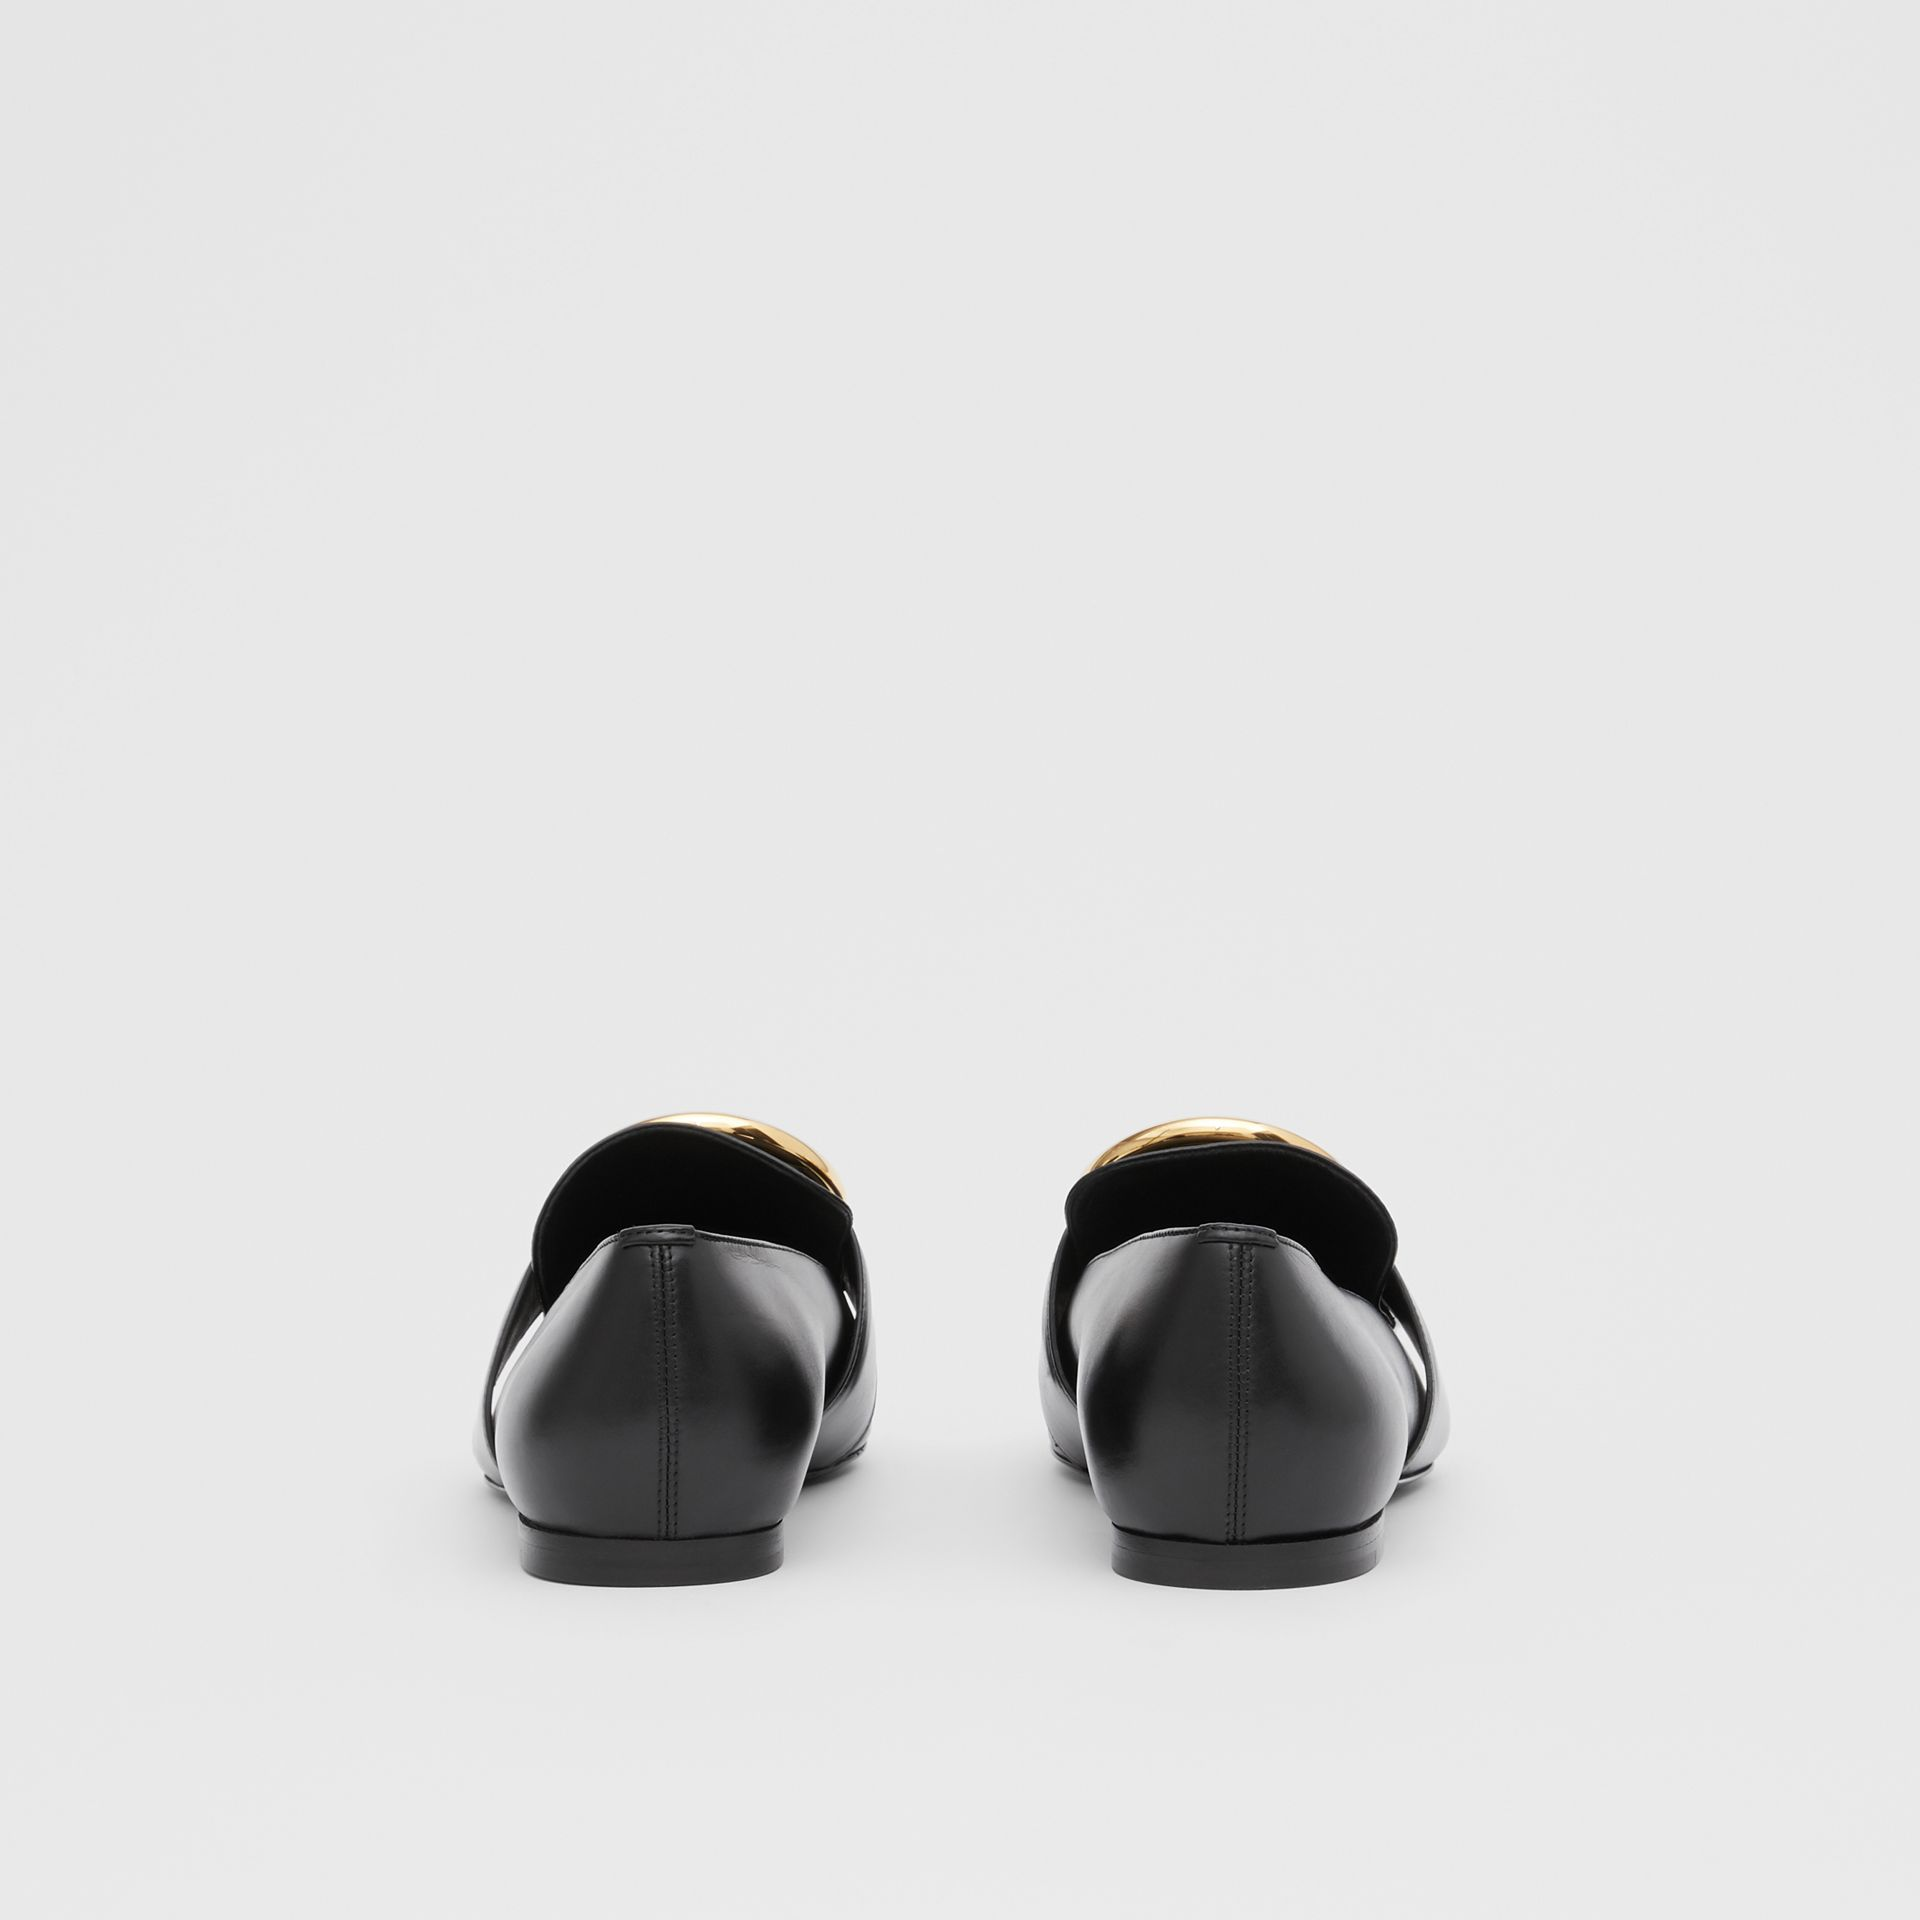 Monogram Motif Leather Loafers in Black - Women | Burberry - gallery image 4